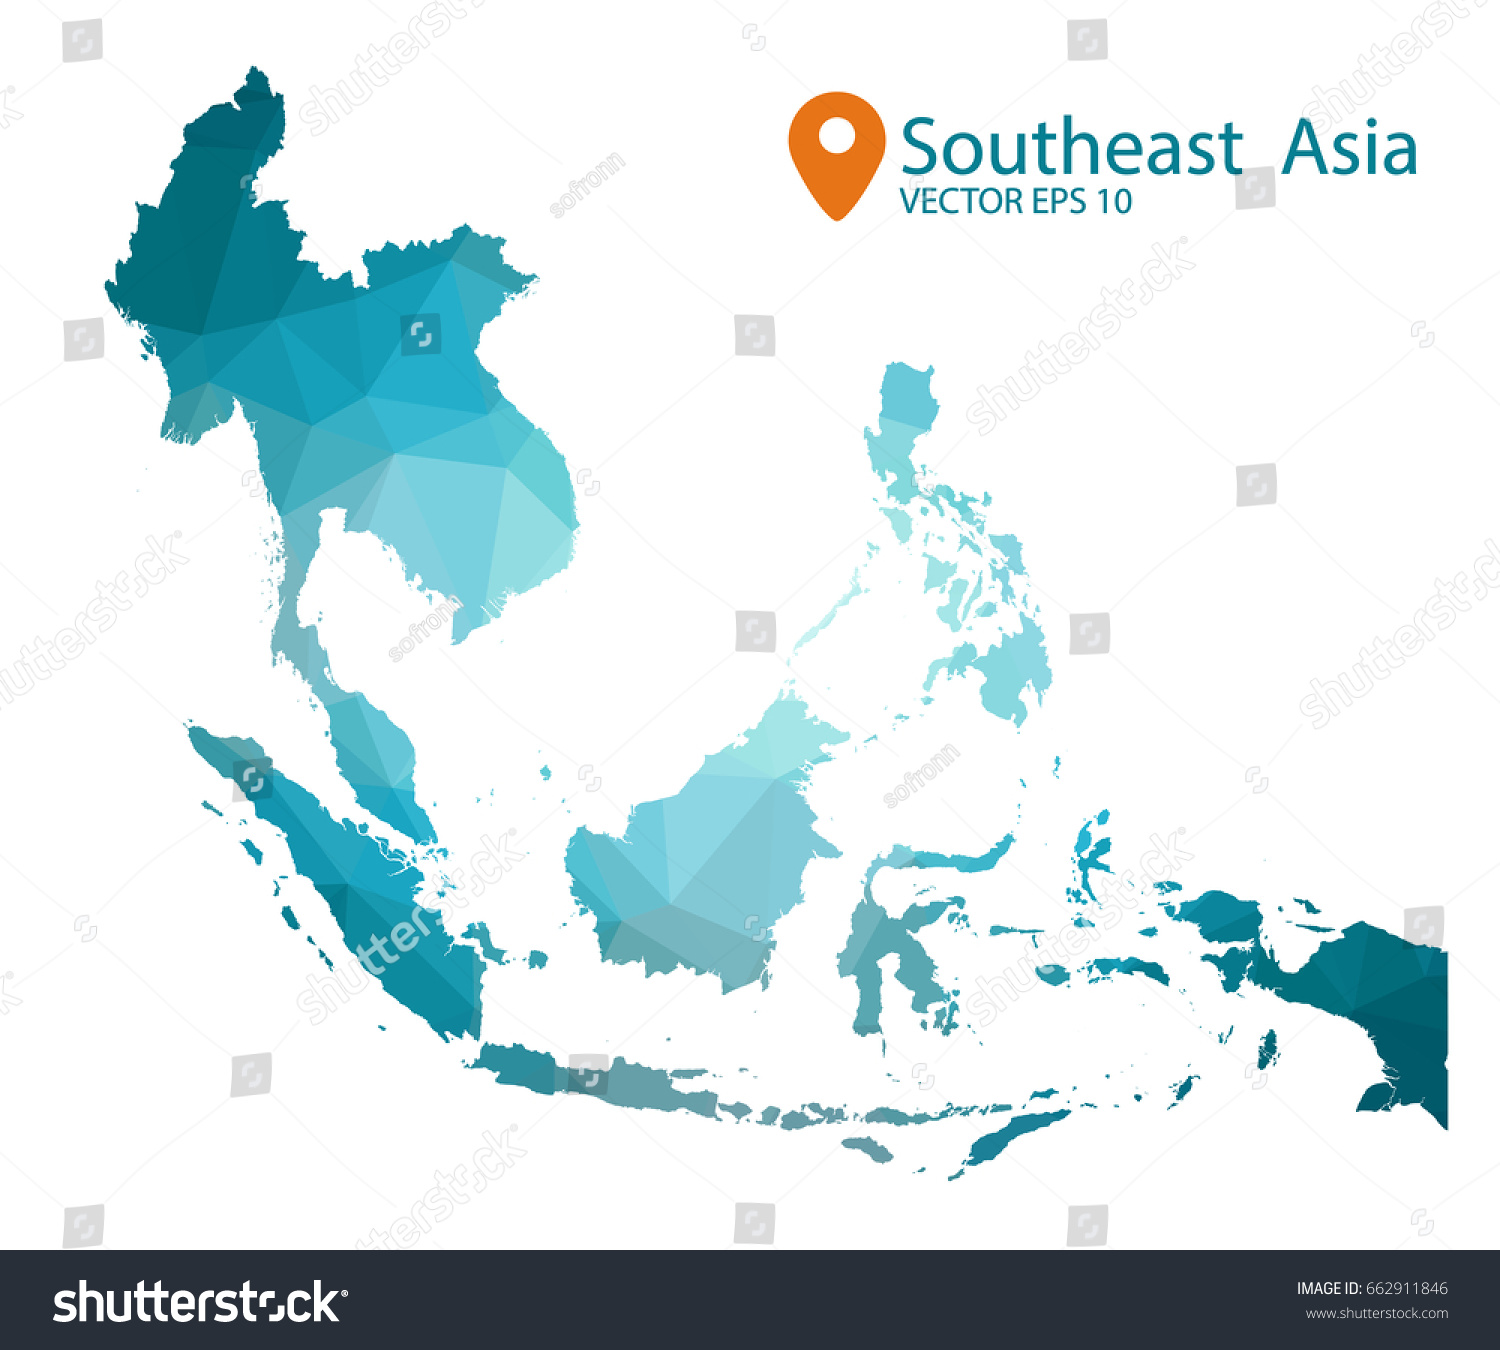 South east asia map blue geometric stock vector 662911846 shutterstock south east asia map blue geometric rumpled triangular low poly style gradient graphic background gumiabroncs Images